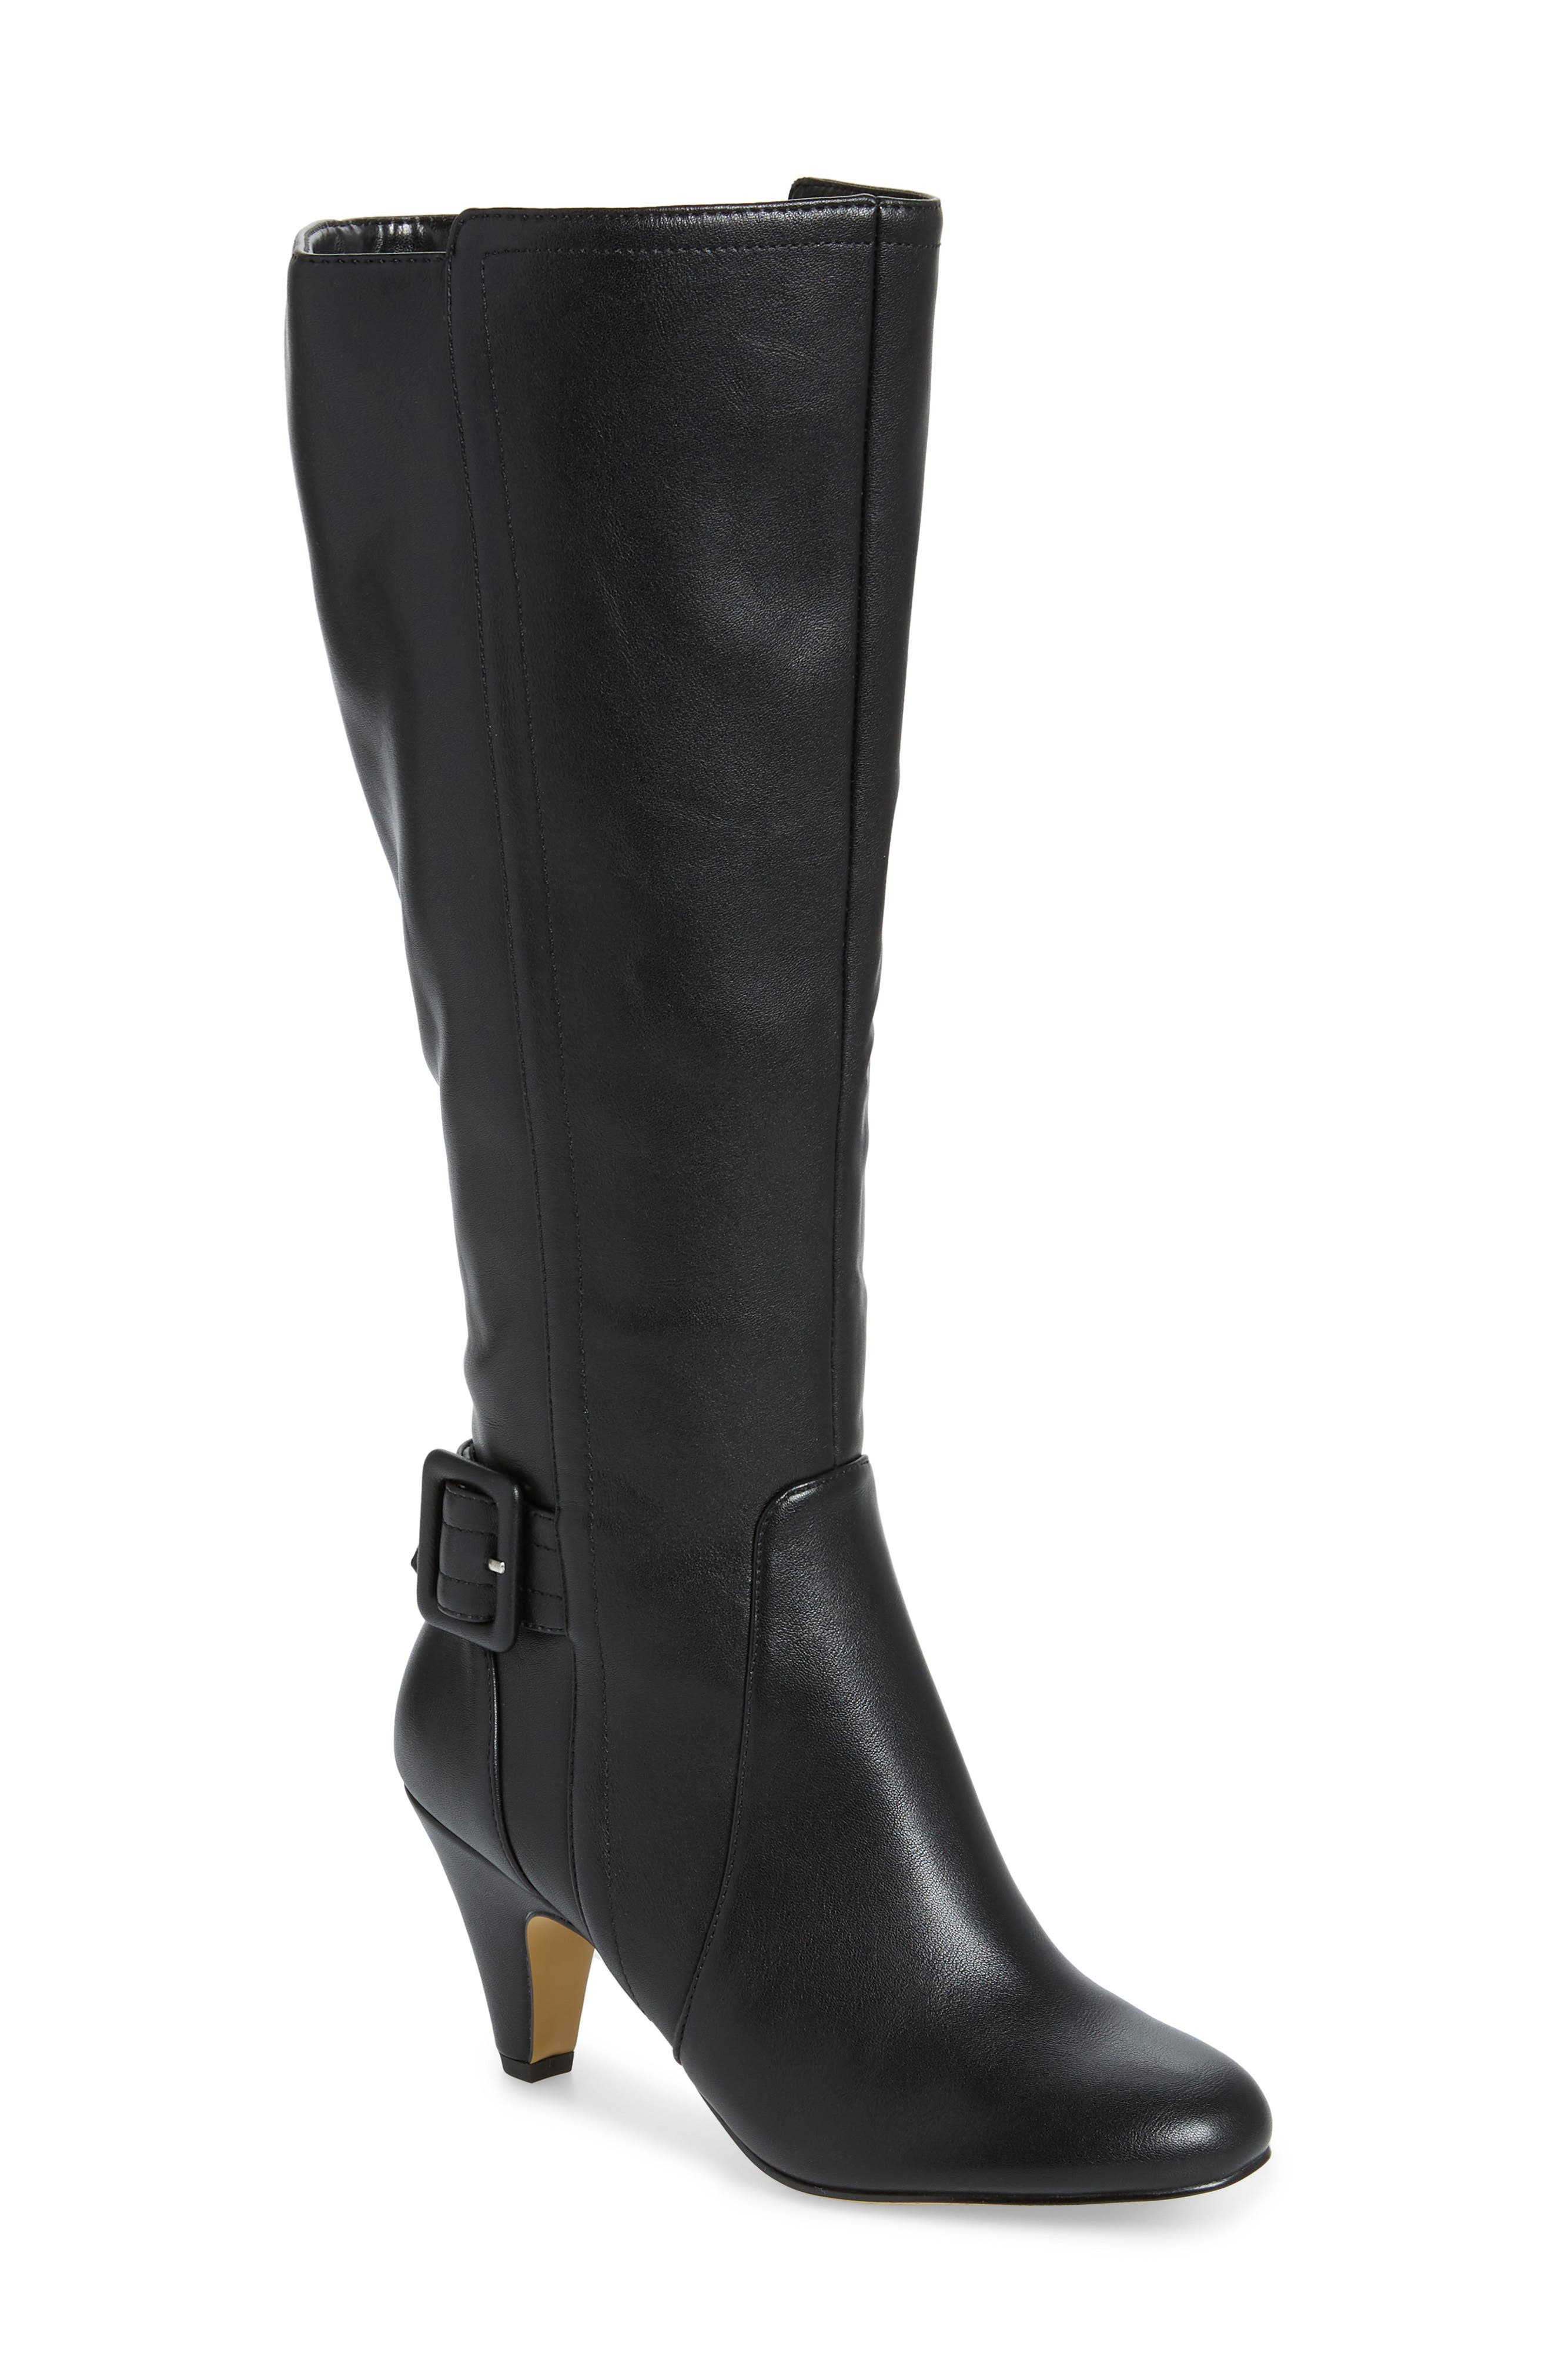 A topstitched strap with a wrapped rectangular buckle details the back of a chic knee-high boot styled with a cone-like heel and almond toe. Style Name: Bella Vita Troy Knee High Buckle Boot (Women). Style Number: 5918934. Available in stores.